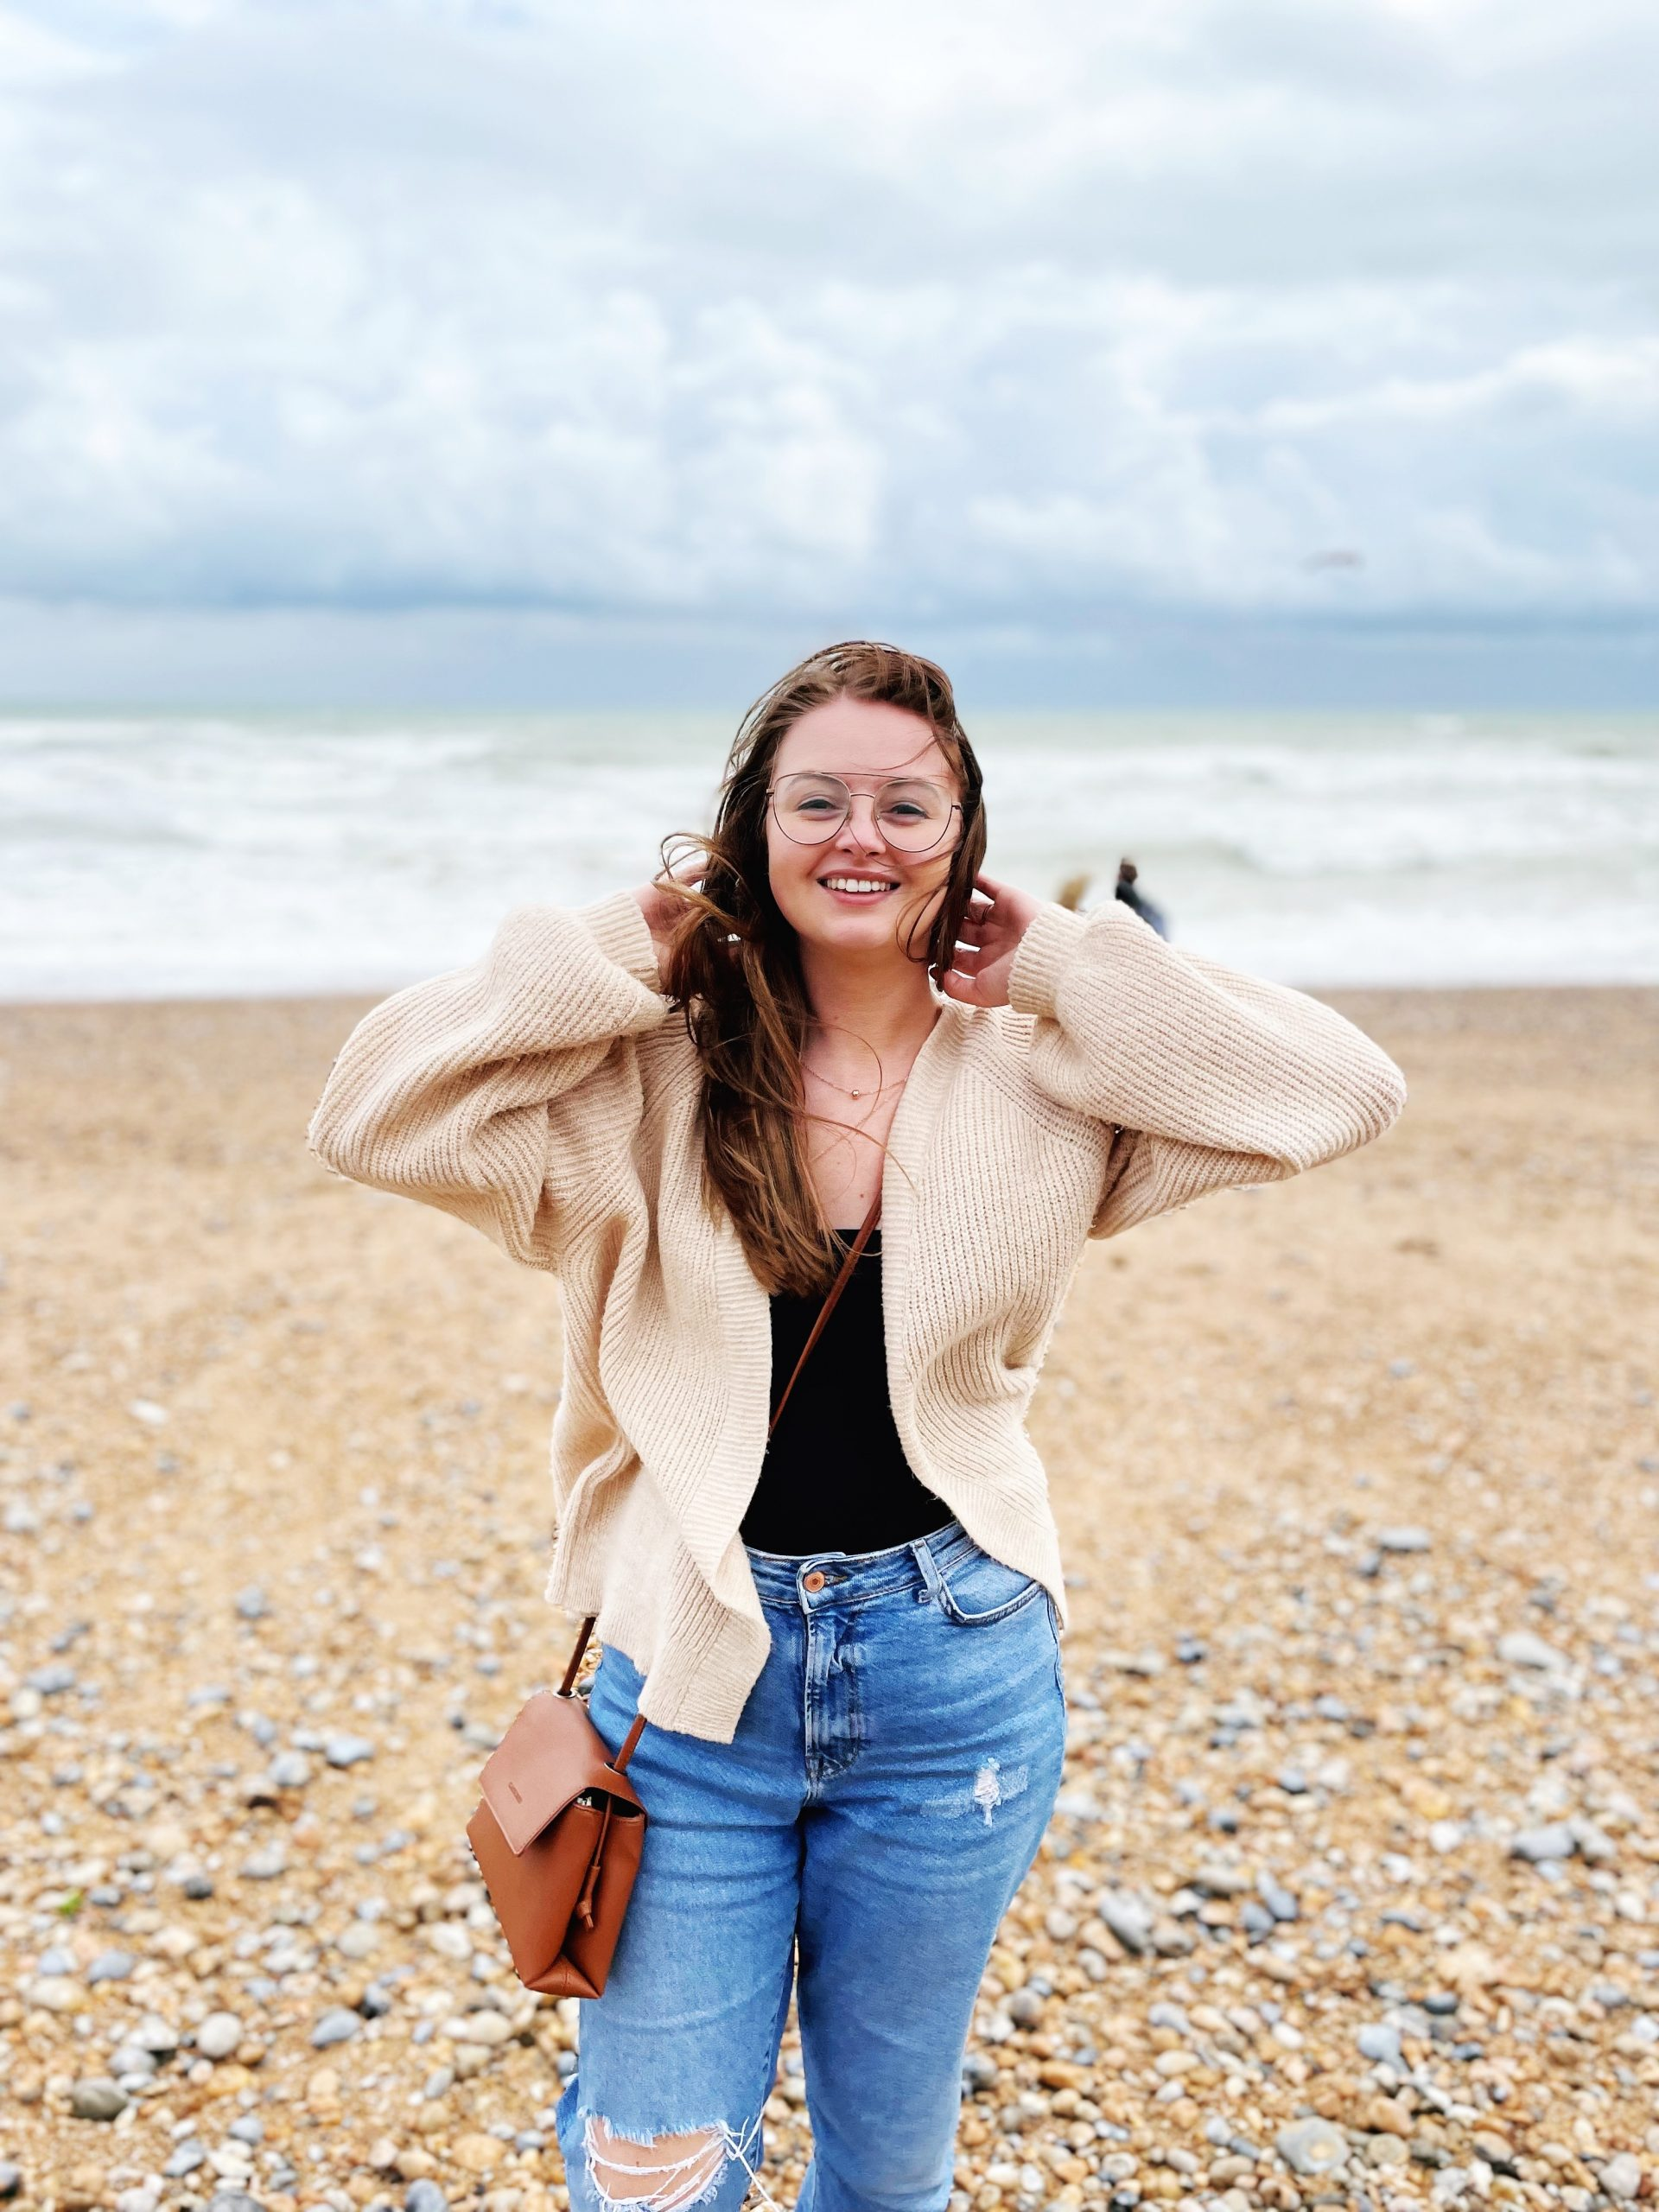 Brunette woman stood on beach with hands in hair